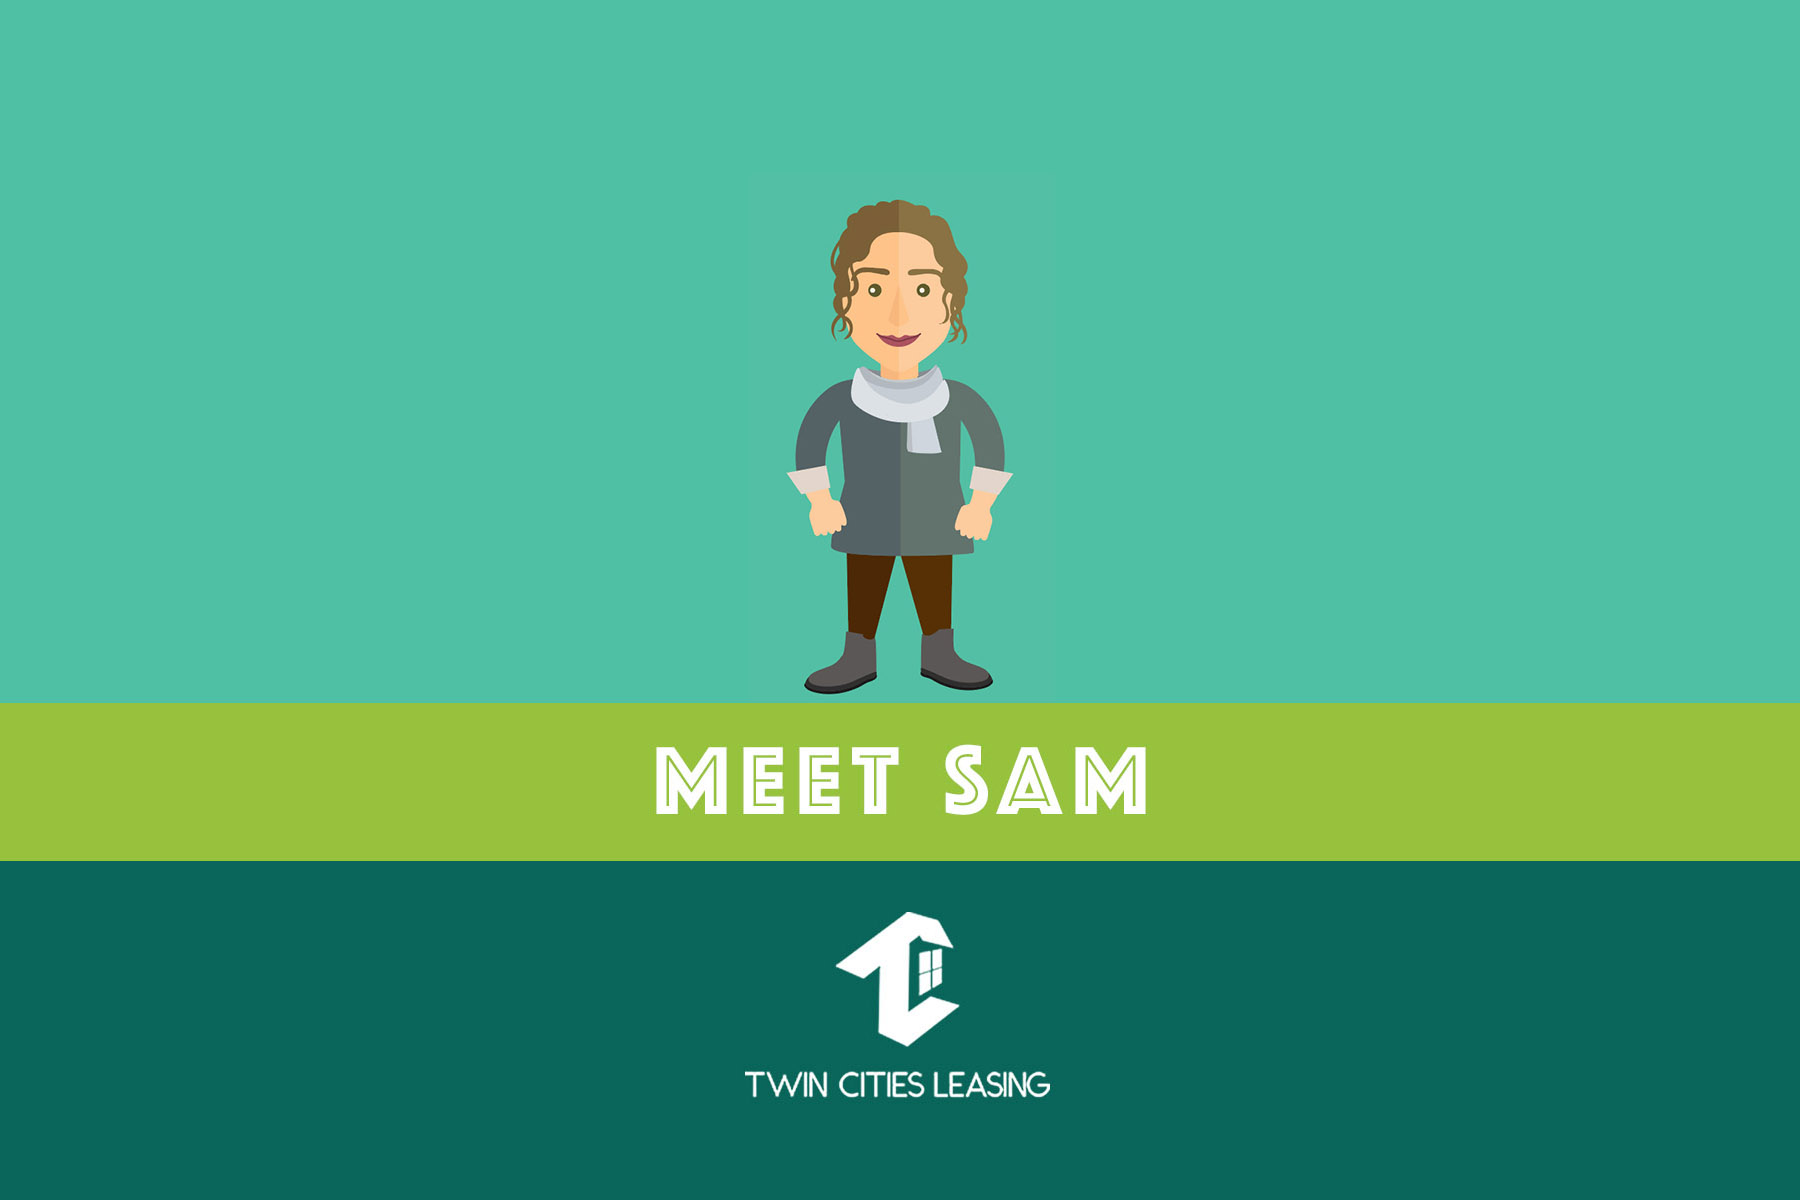 About Sam